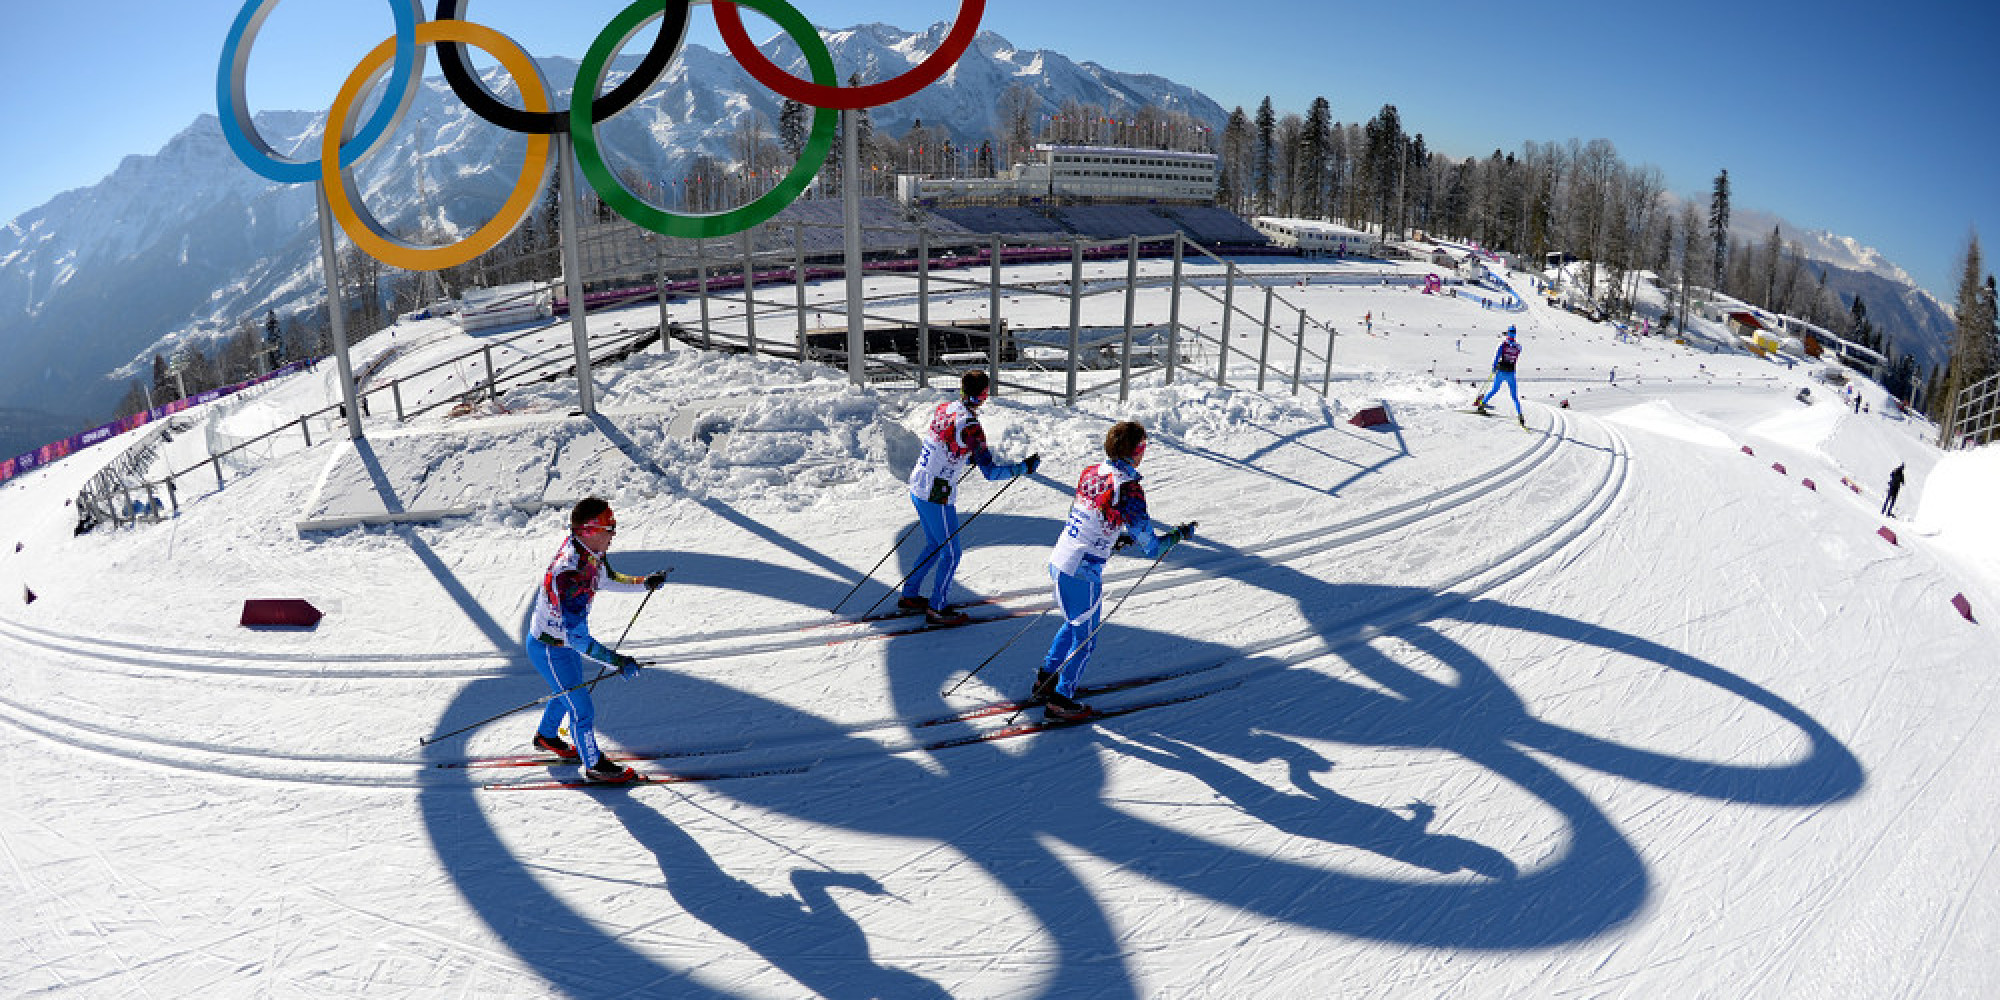 12 Sochi Olympics Facts To Impress Your Friends